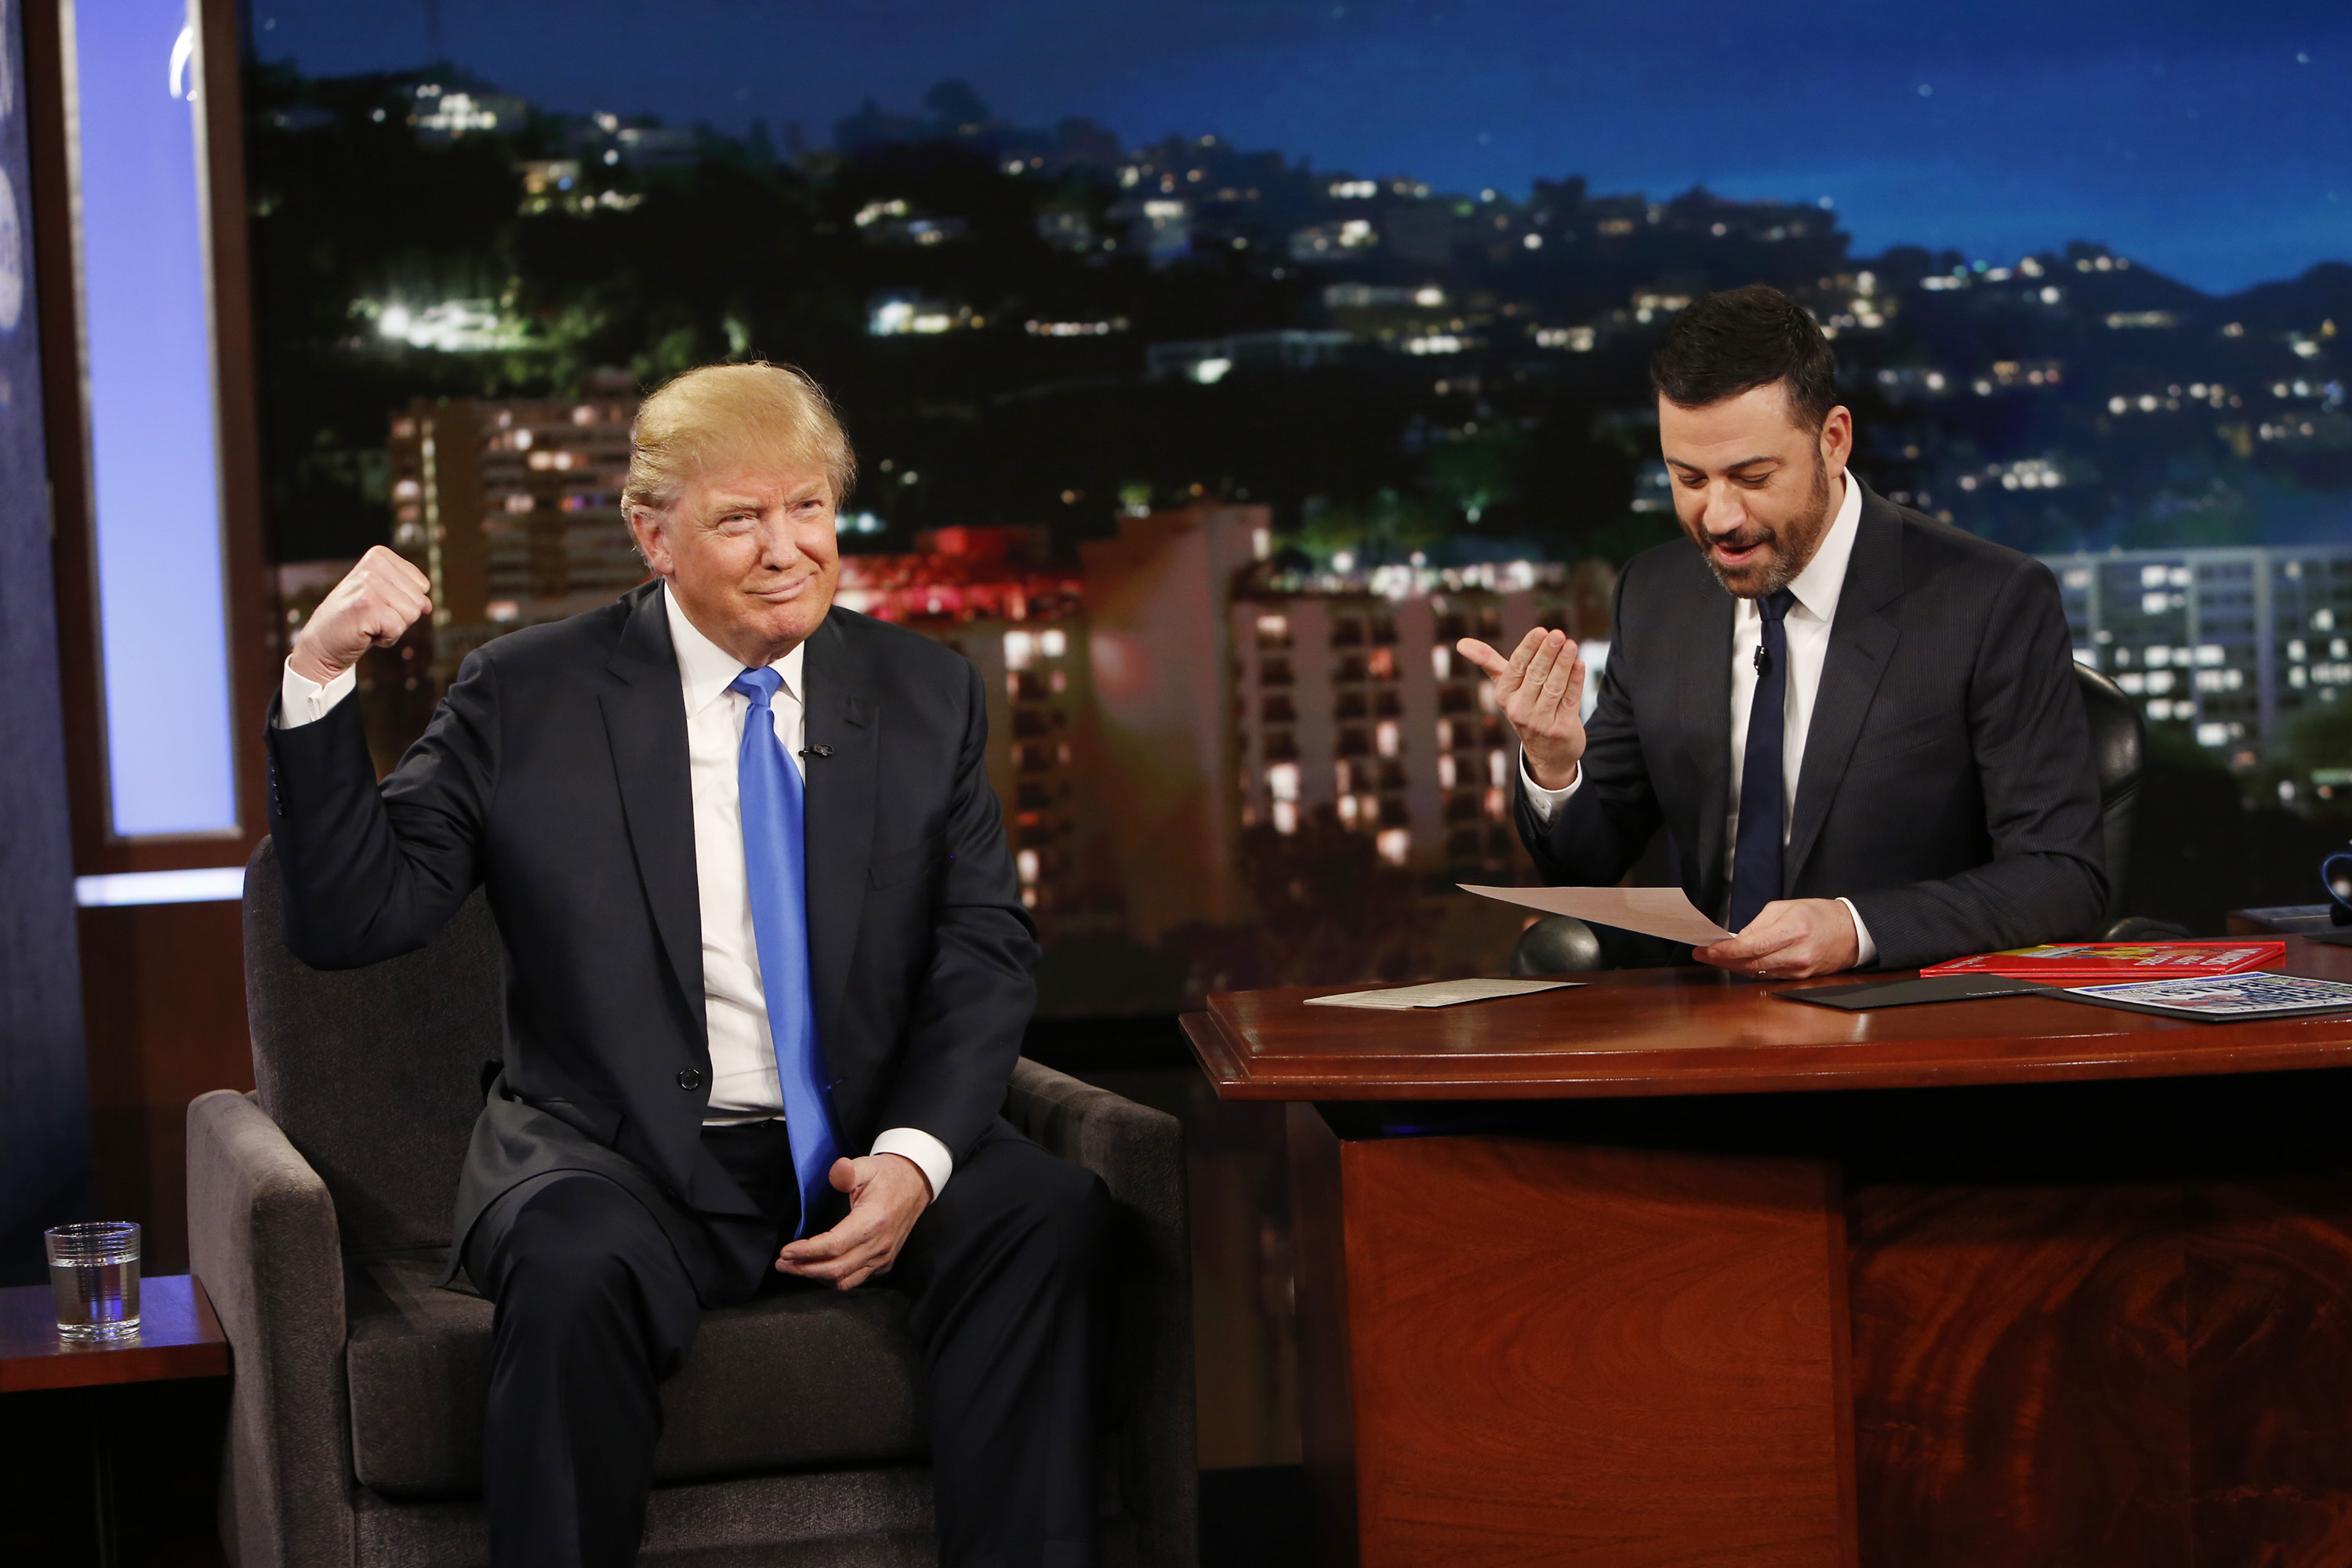 Republican Presidential candidate Donald Trump on Jimmy Kimmel's show in December.